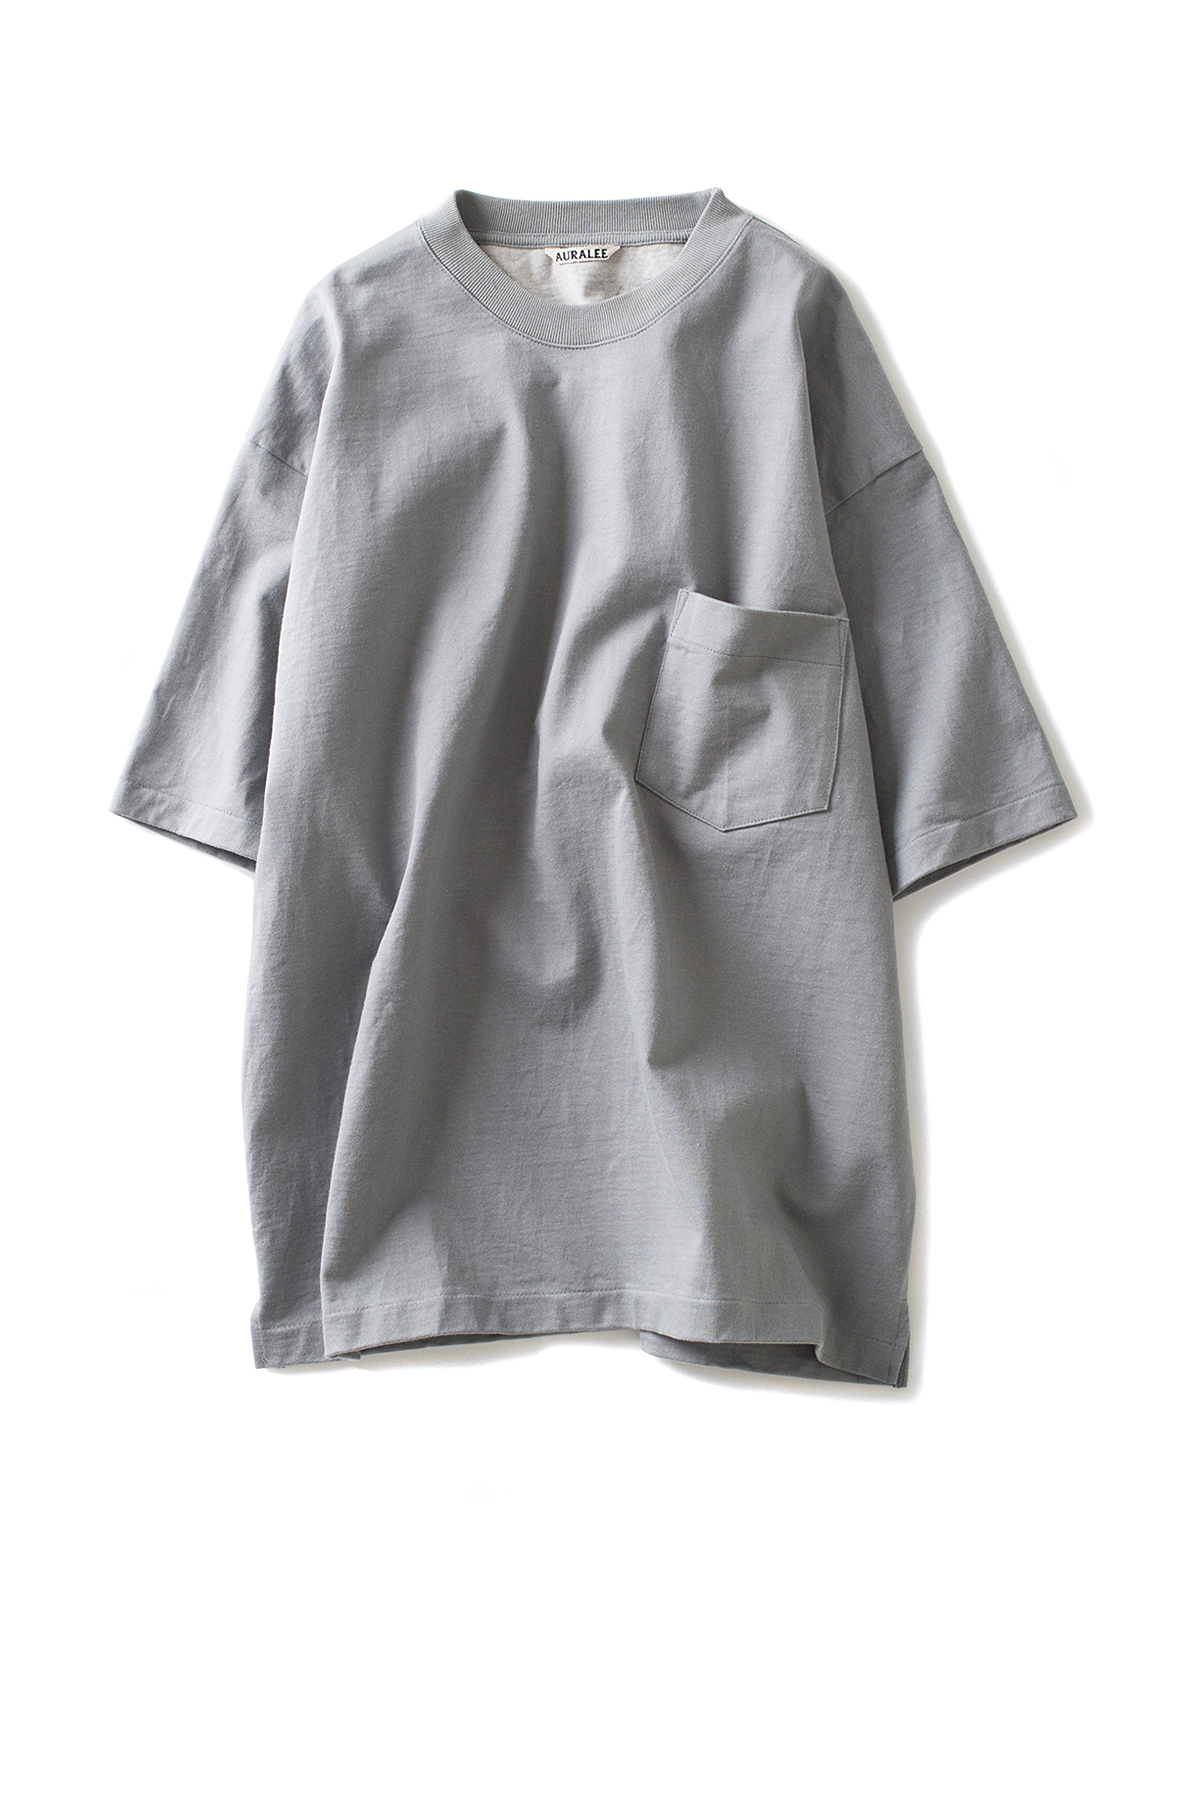 Auralee : Stand-Up Tee (Blue Grey)